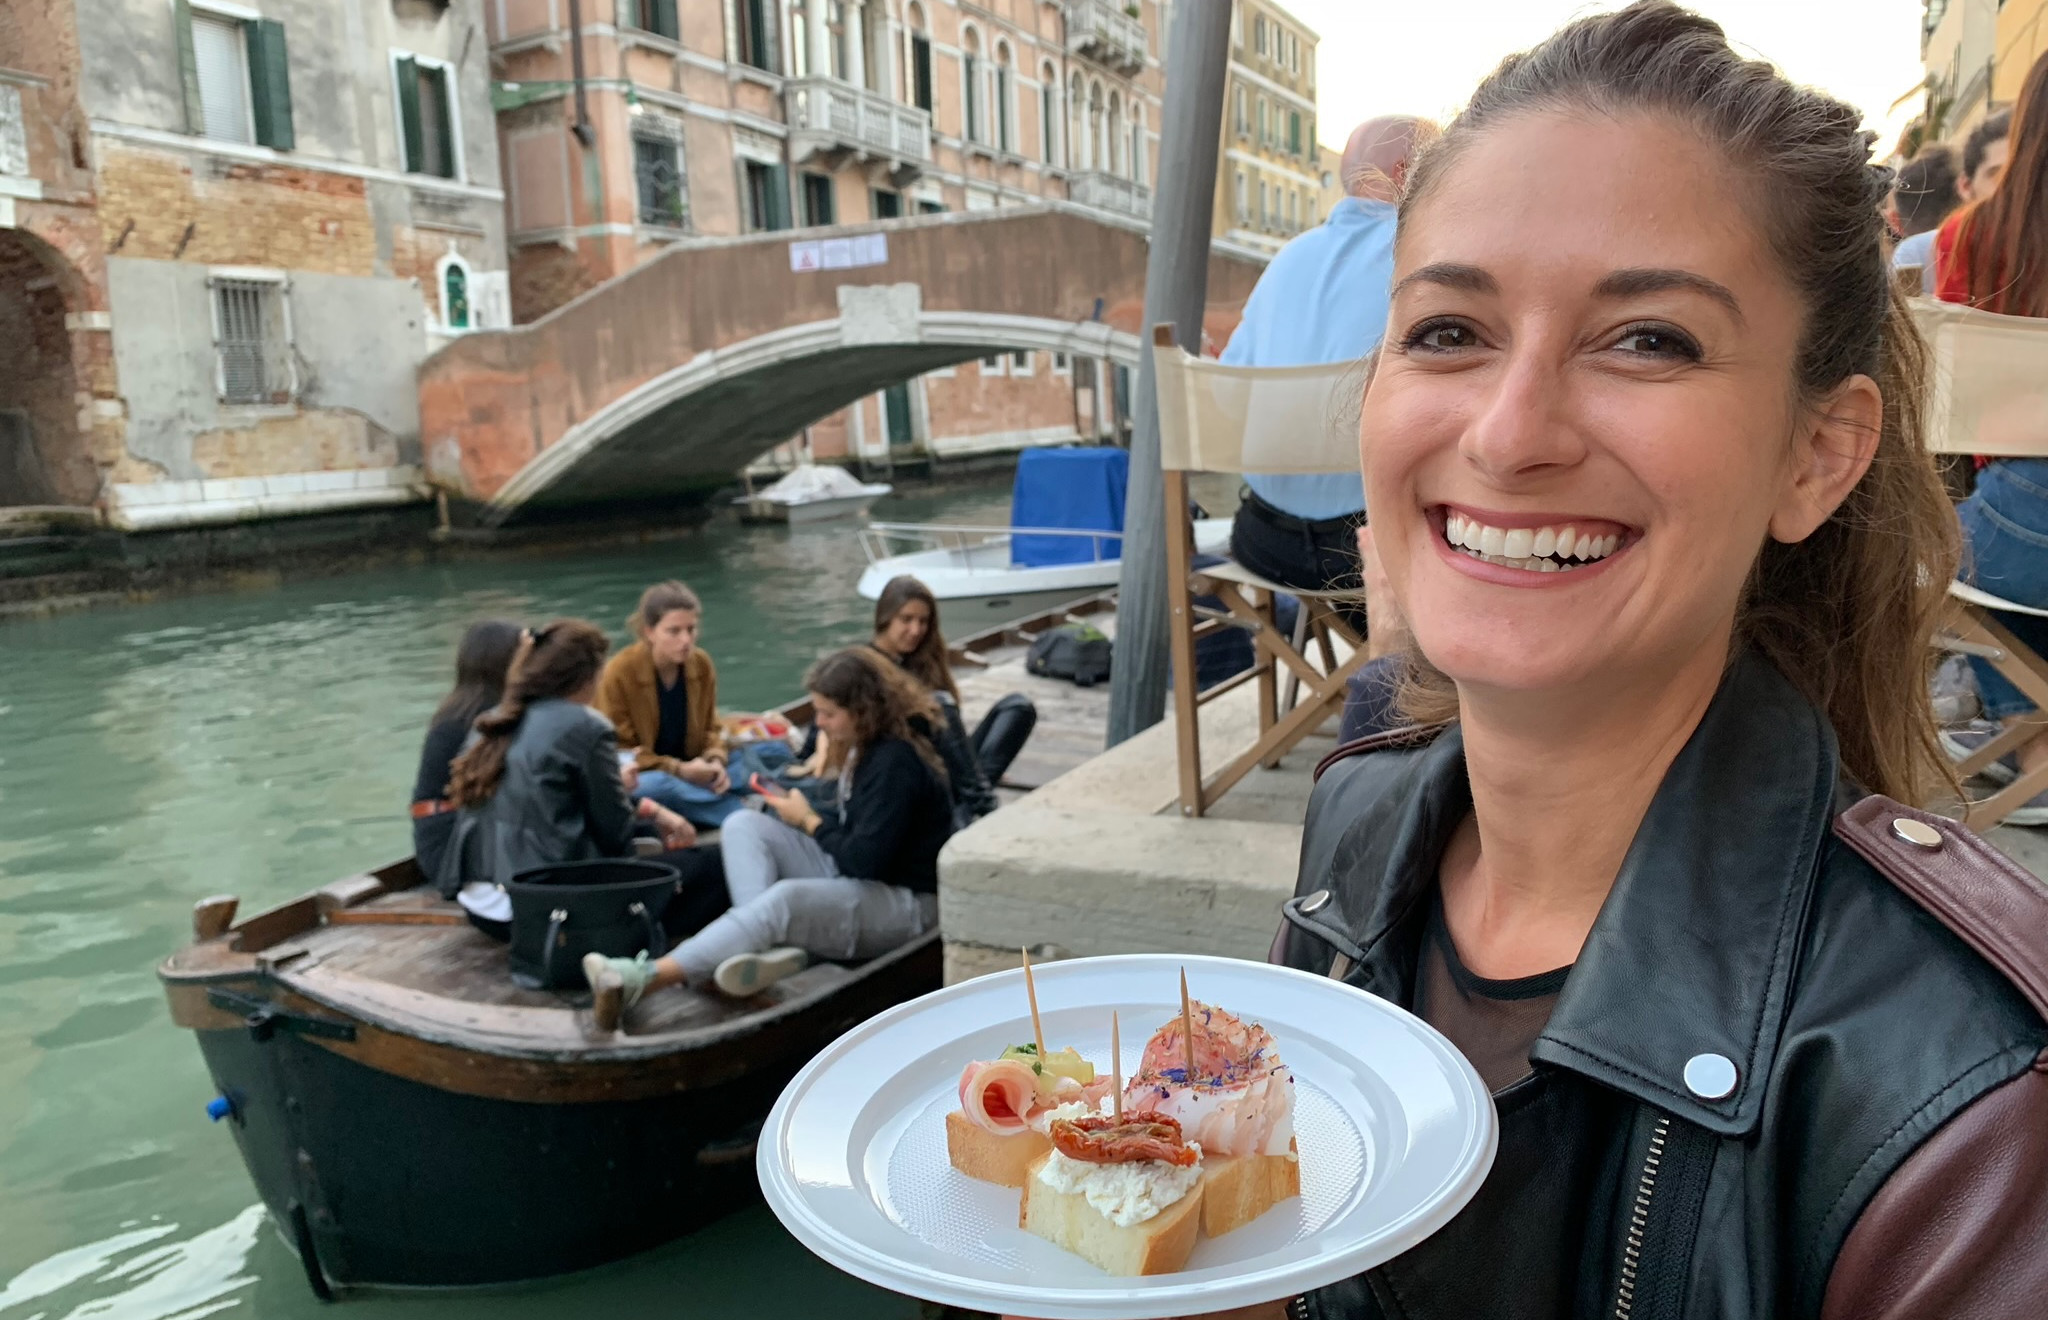 A reward for not falling off of the boat: Cicchetti!